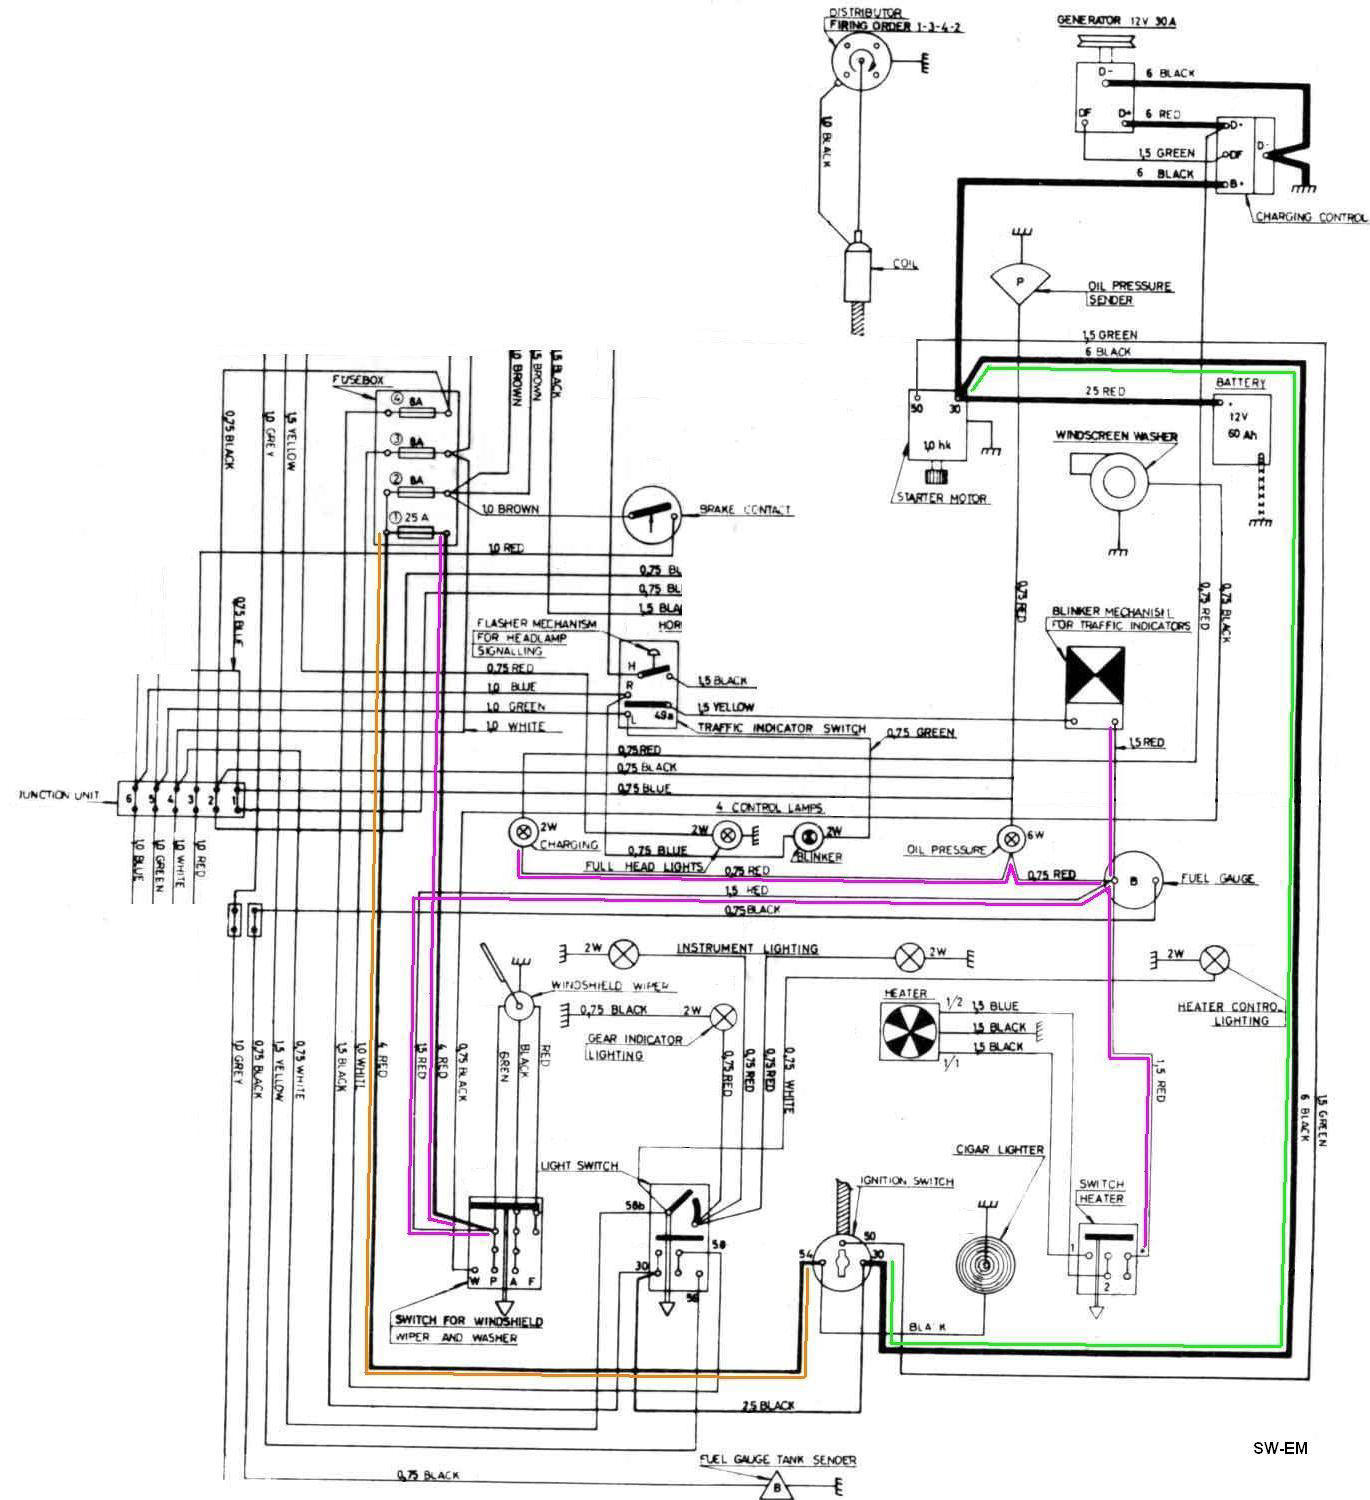 wiring diagram for ignition switch 70 chevelle honda element free engine